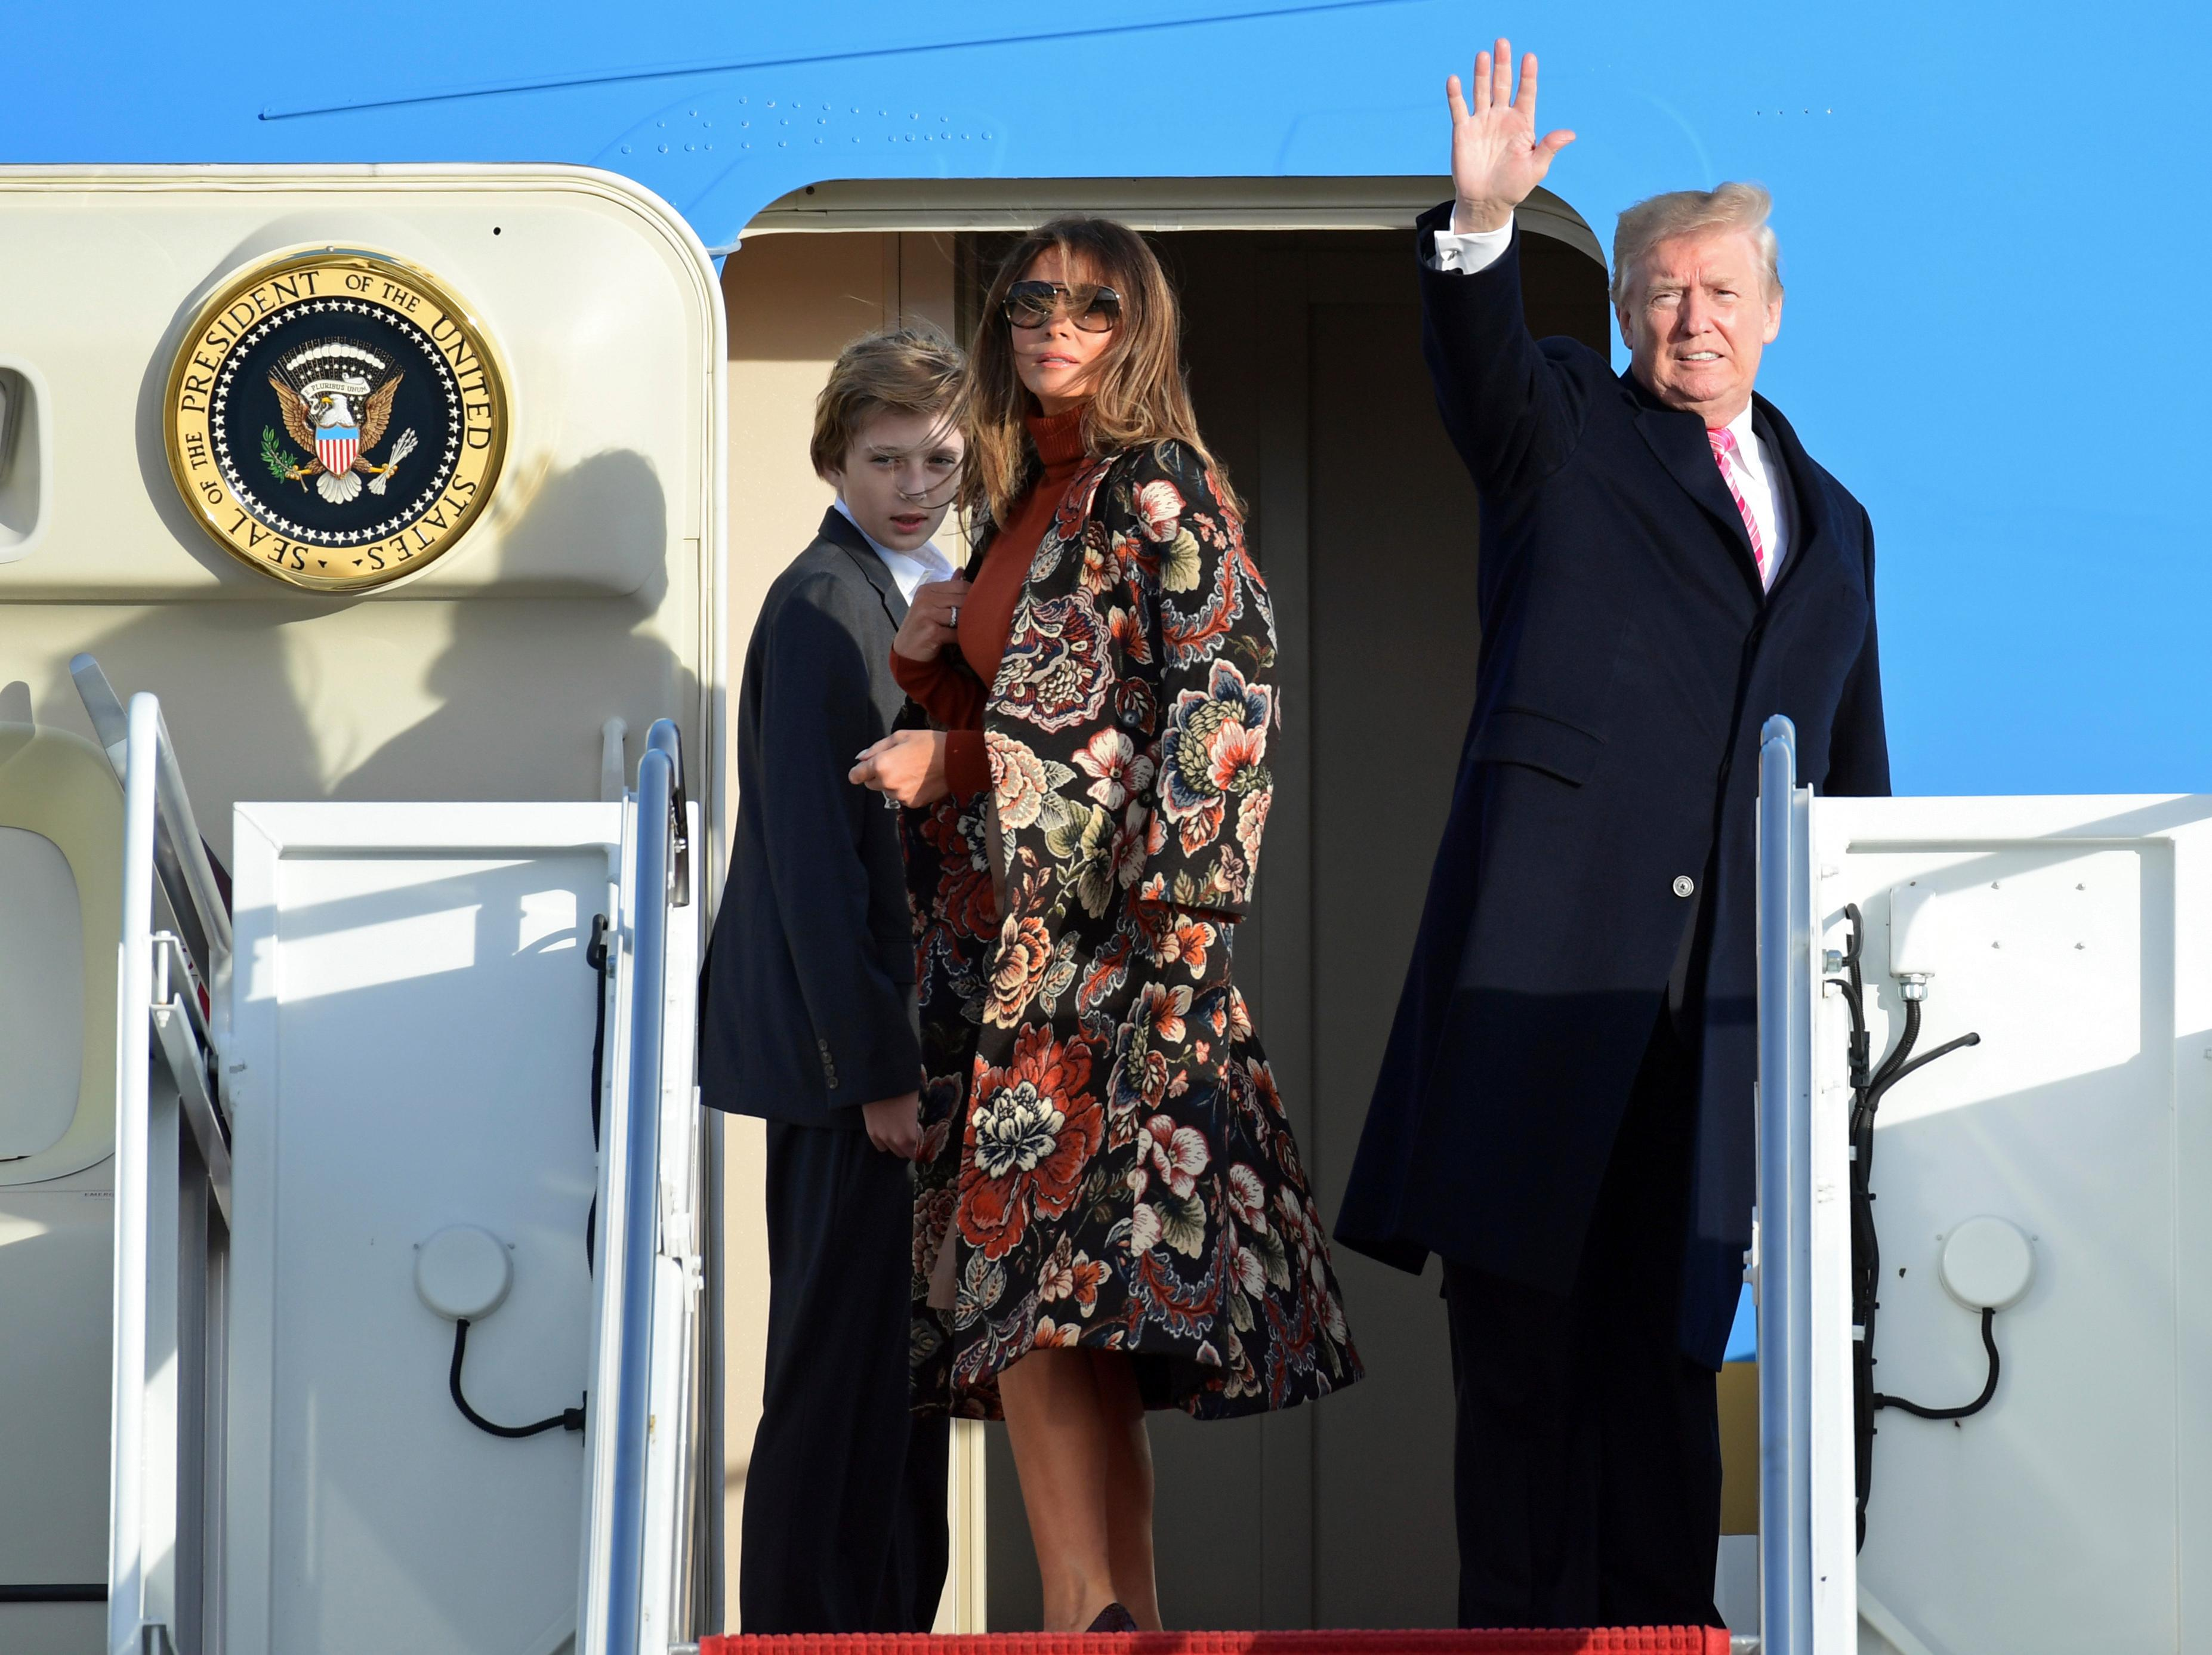 President Donald Trump, right, first lady Melania Trump, center, and their son Barron Trump, left, stand at the top of the stairs of Air Force One at Andrews Air Force Base in Md., Tuesday, Nov. 21, 2017. The Trump's are going to Mar-a-Lago in Palm Beach, Fla., for the Thanksgiving holiday. (AP Photo/Susan Walsh)